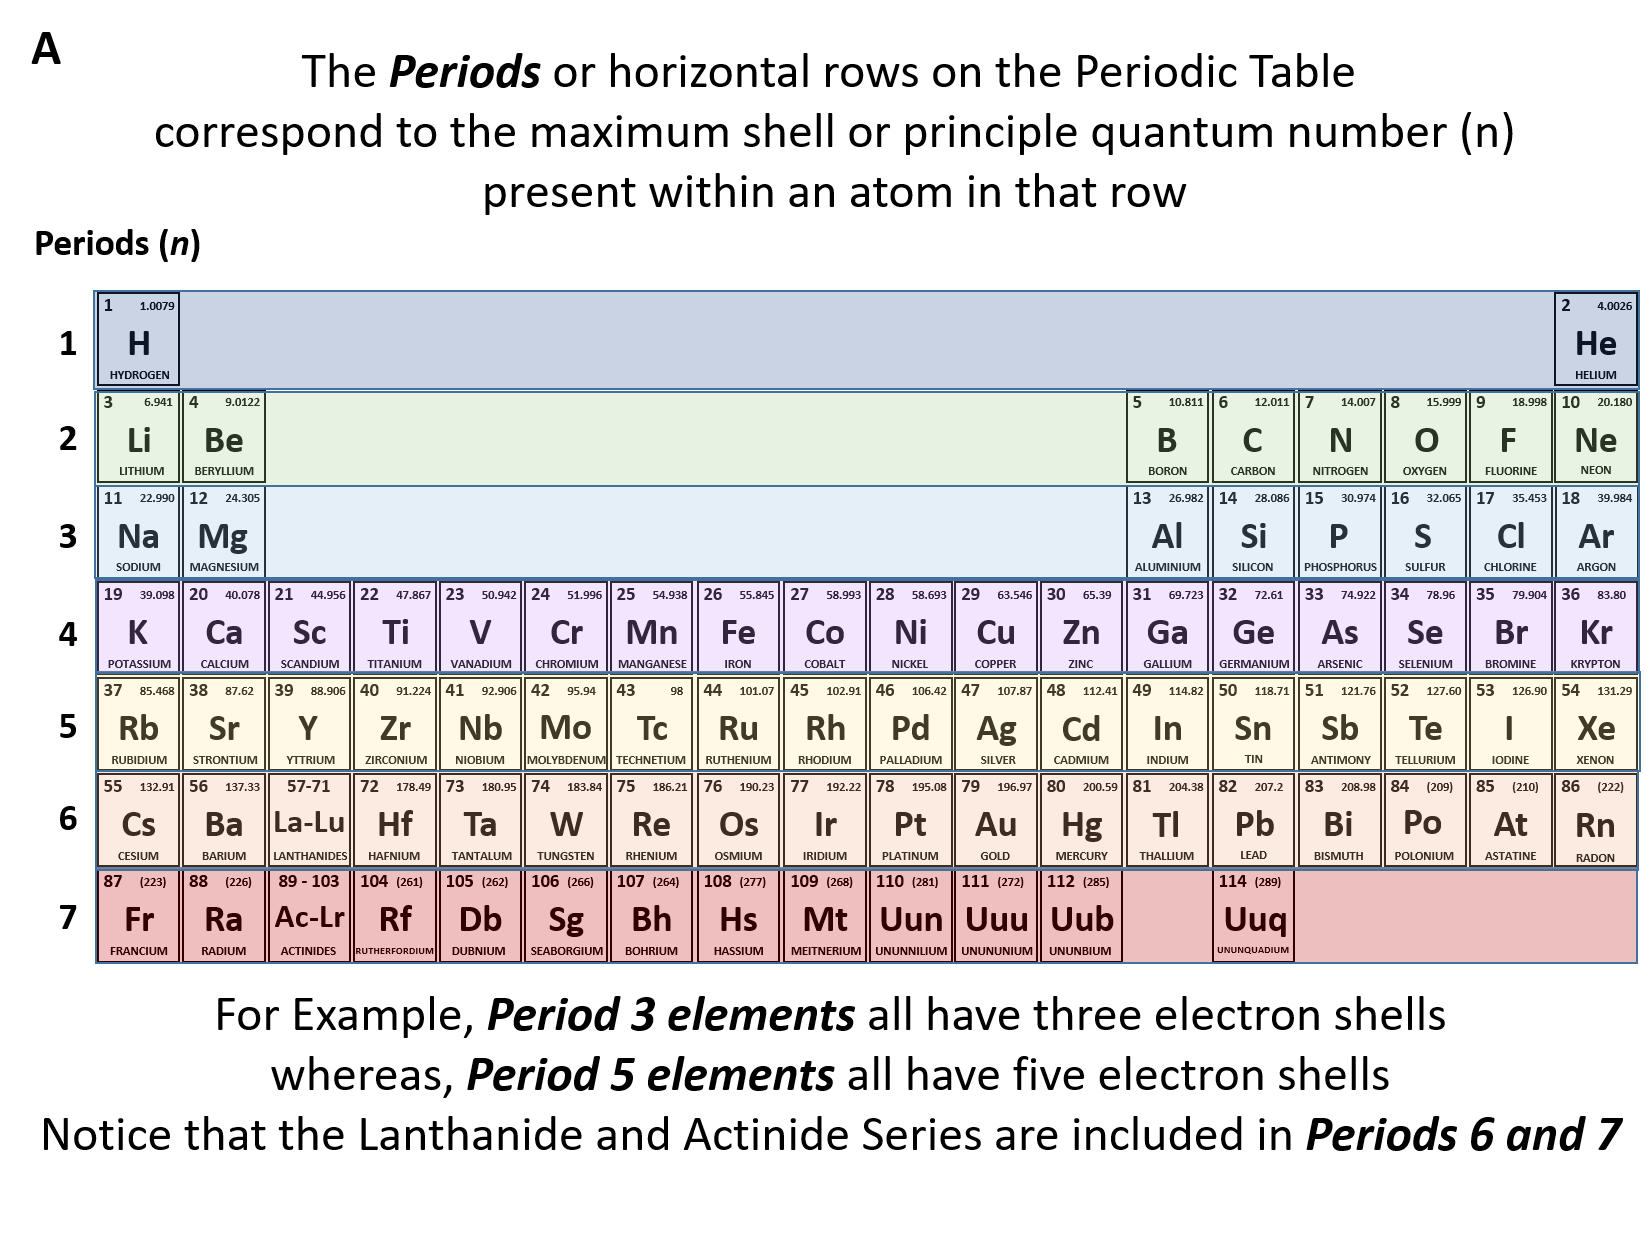 Worksheet 7 Trends On The Periodic Table Topic 2 Answer